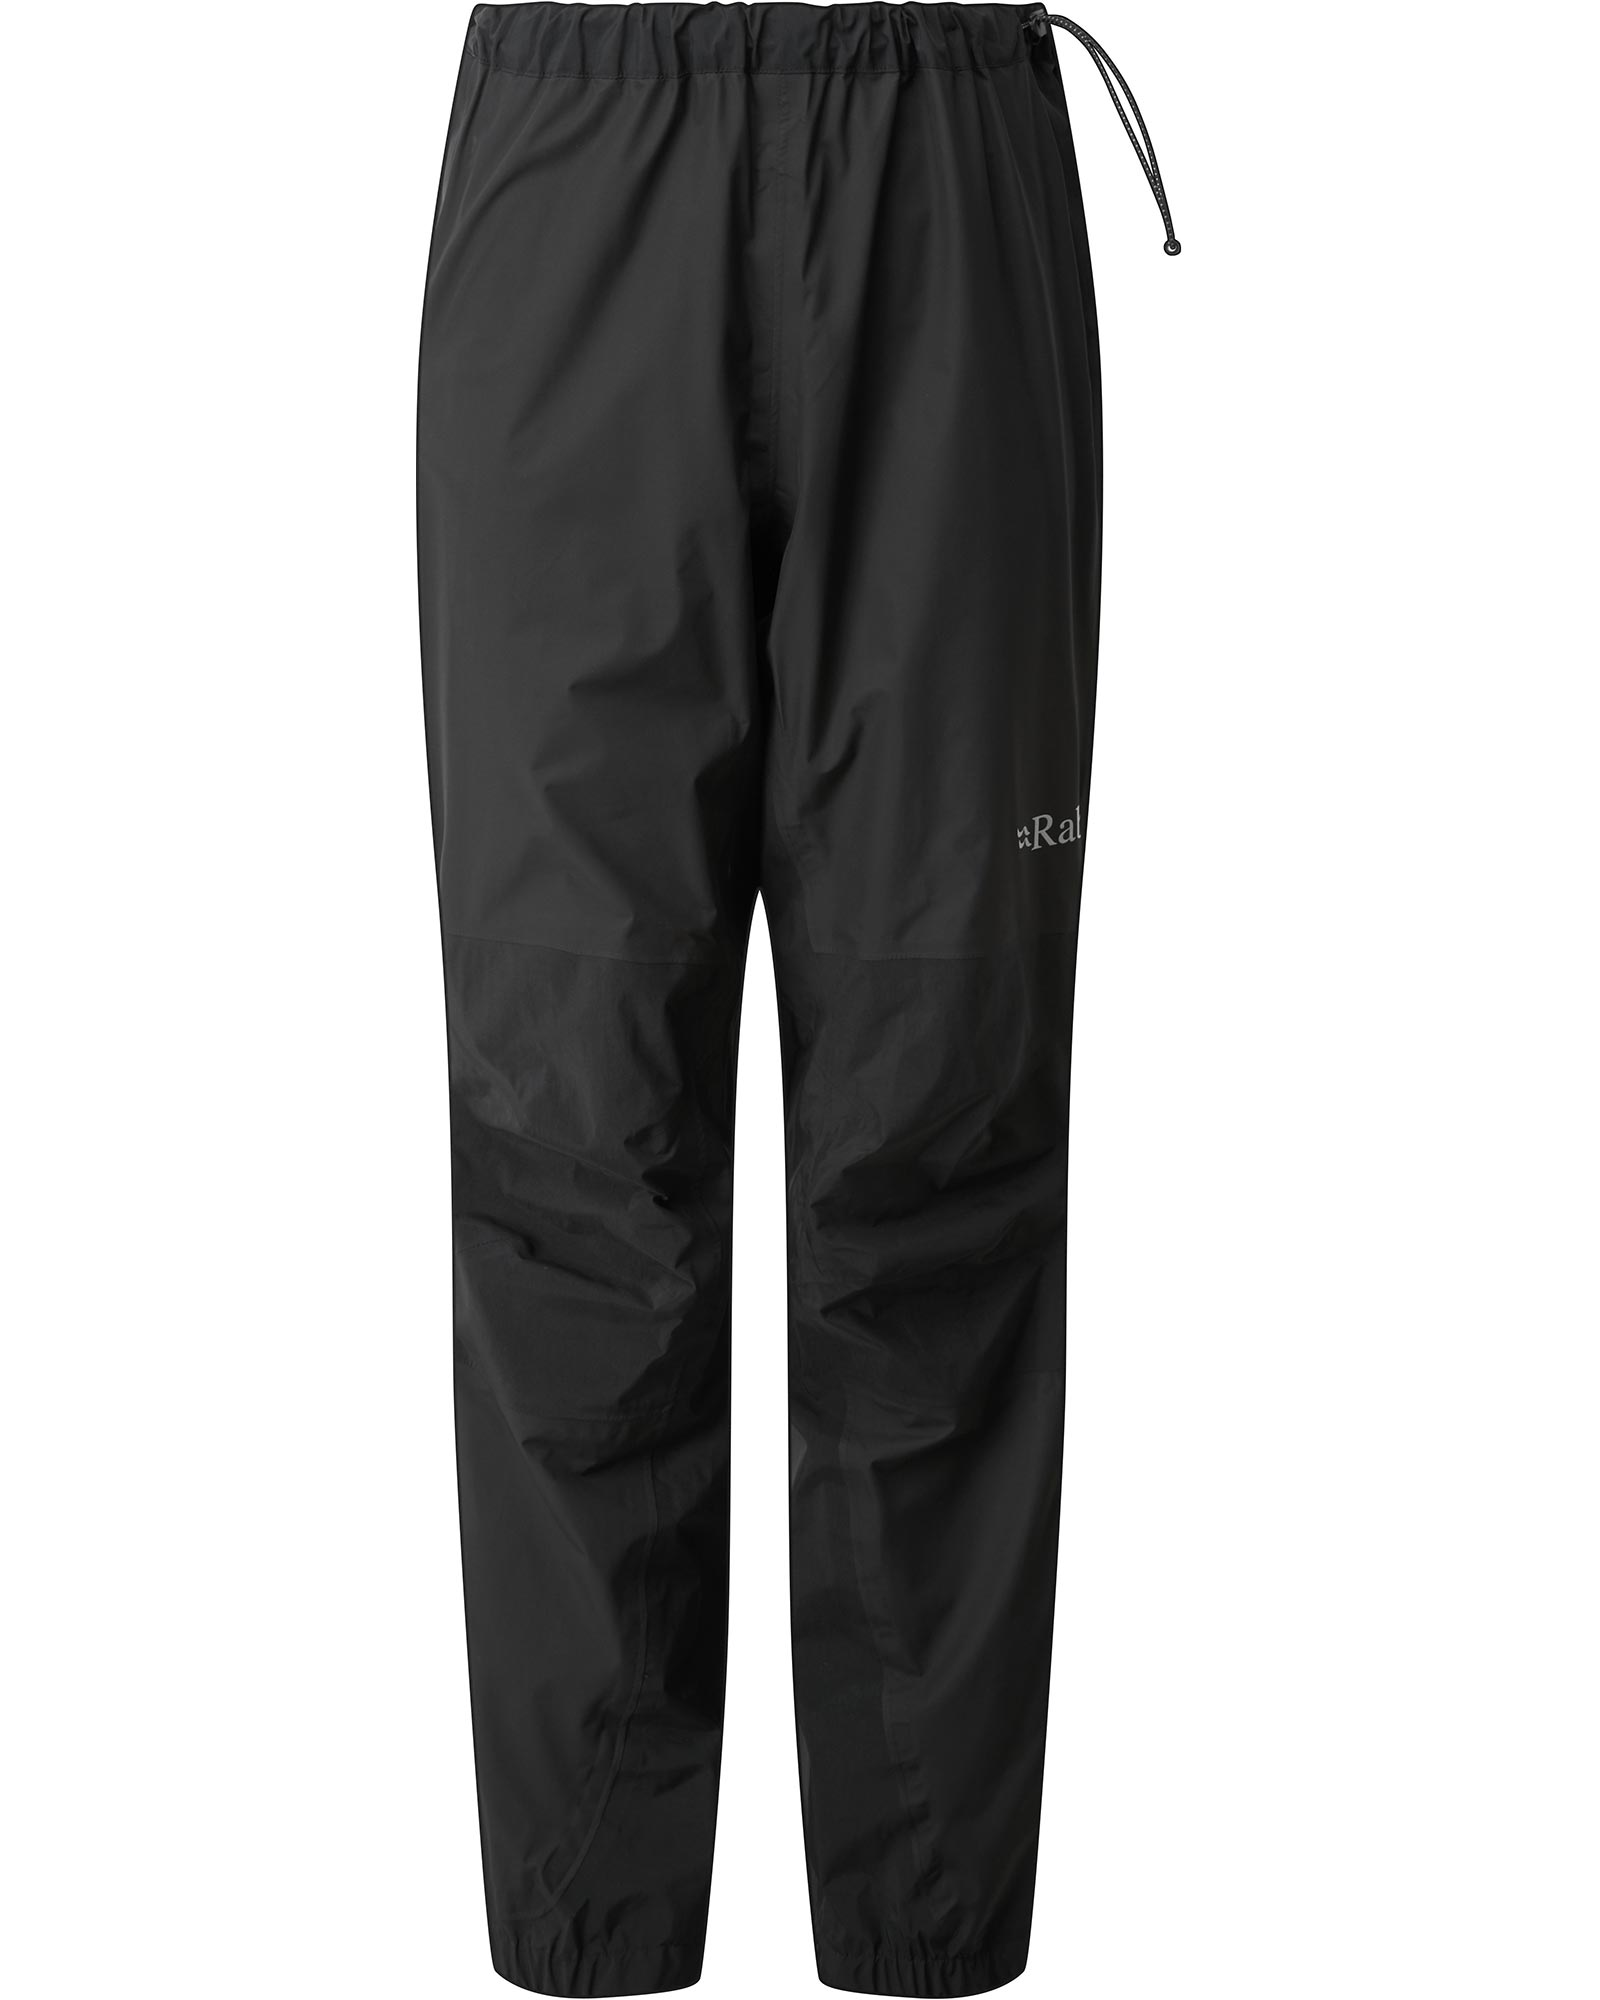 Rab Women's Zenith GORE-TEX PACLITE Plus Pants 0